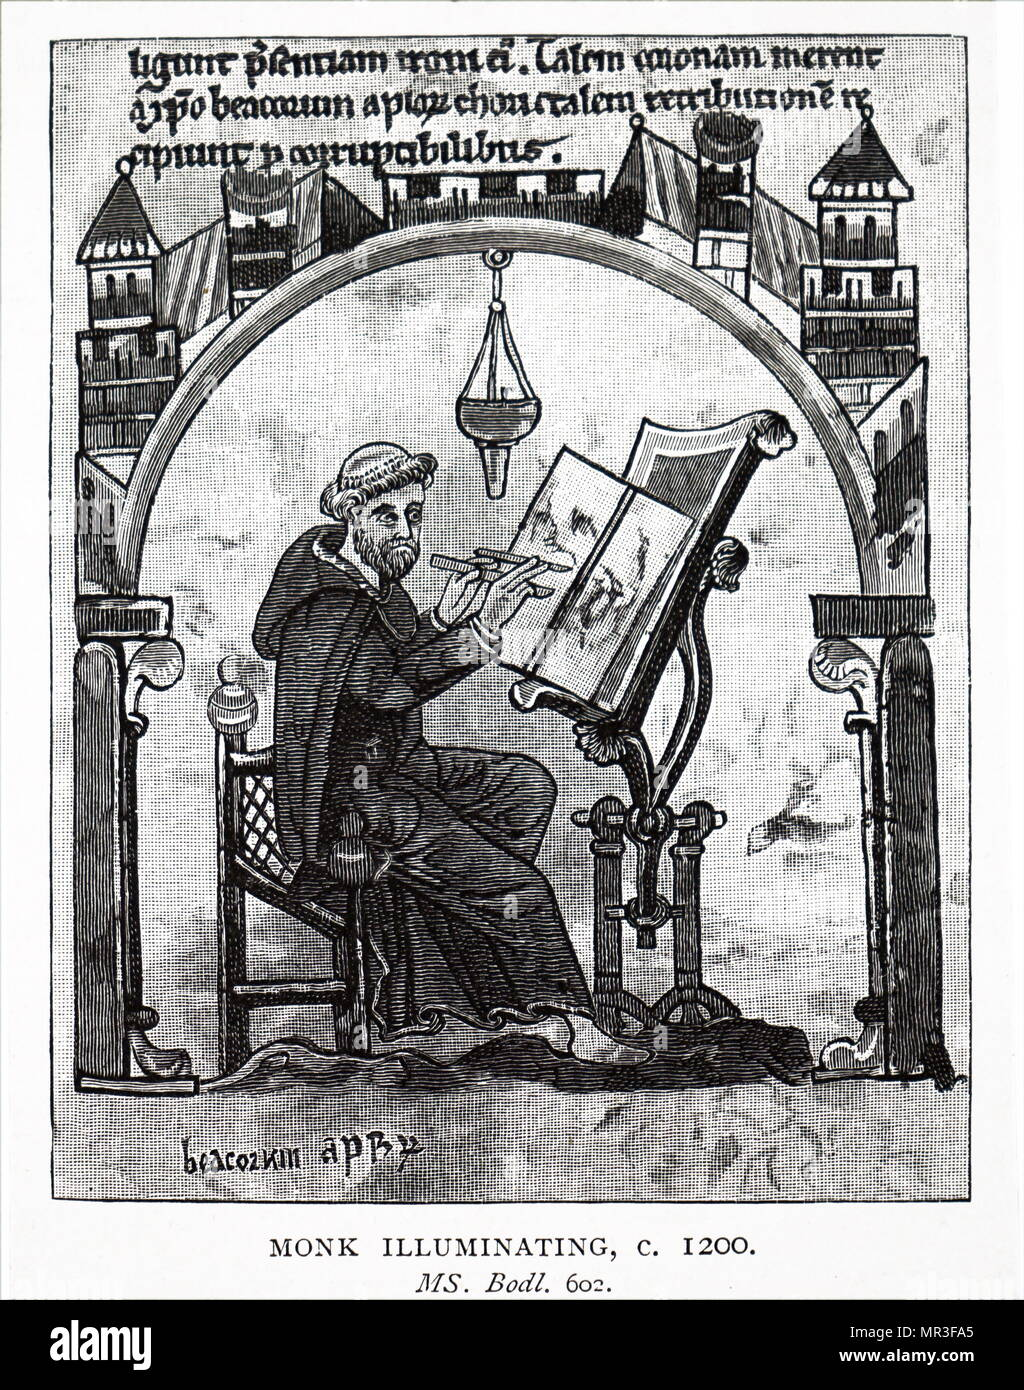 Engraving depicting a monk illuminating a manuscript. Dated 13th century - Stock Image